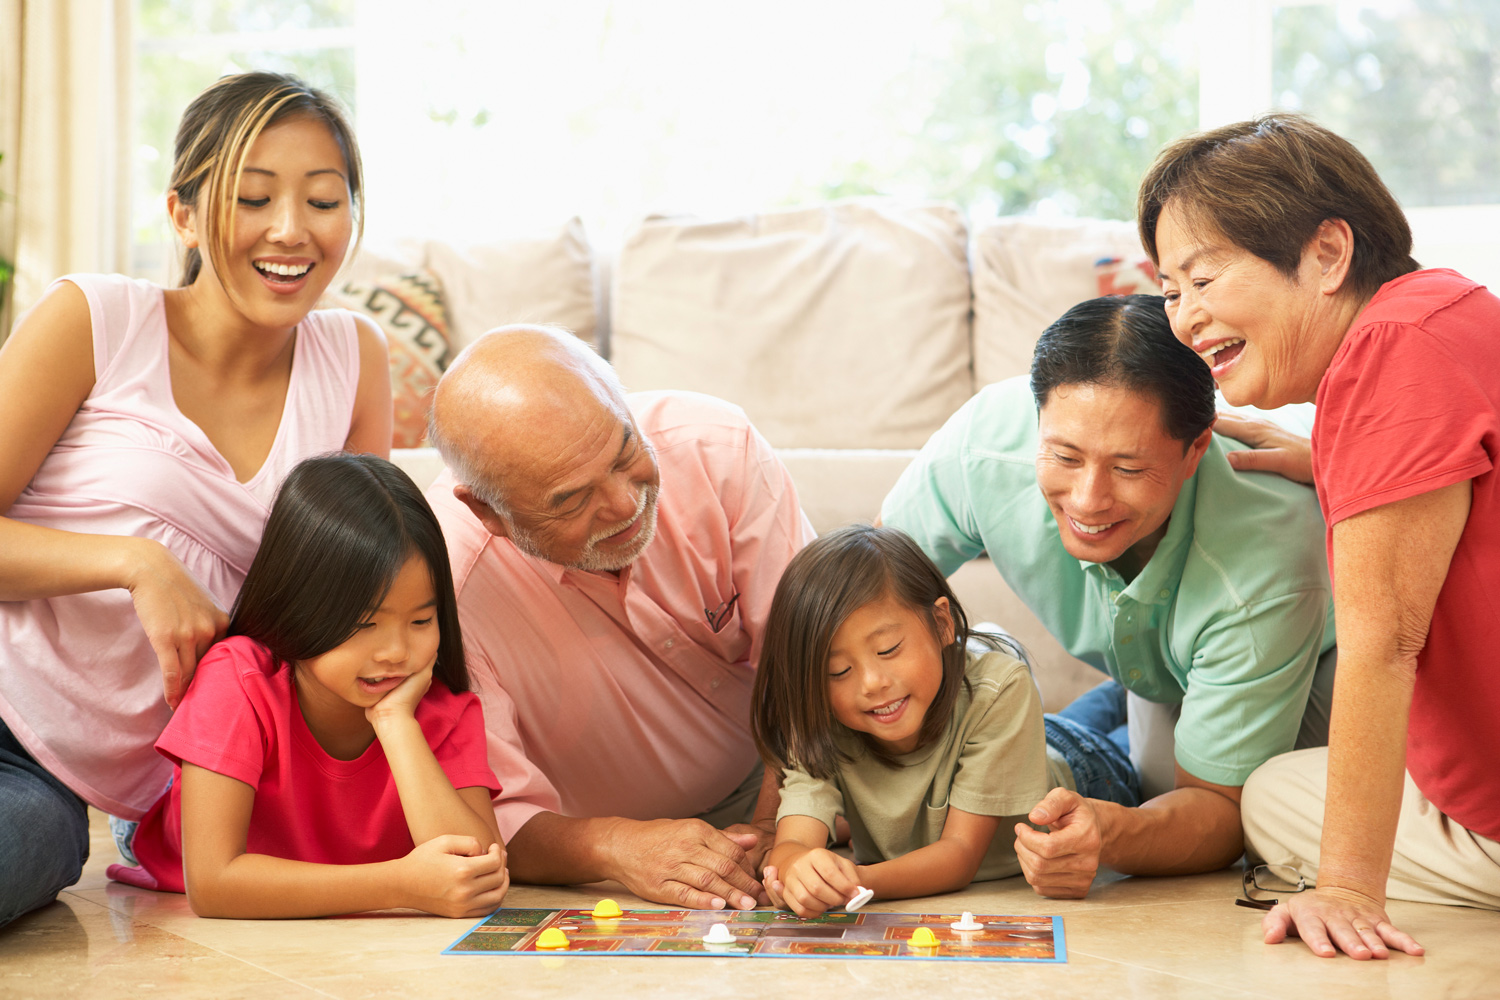 1-Extended-Family-Group-Playing-Board-Game-At-Home.jpg